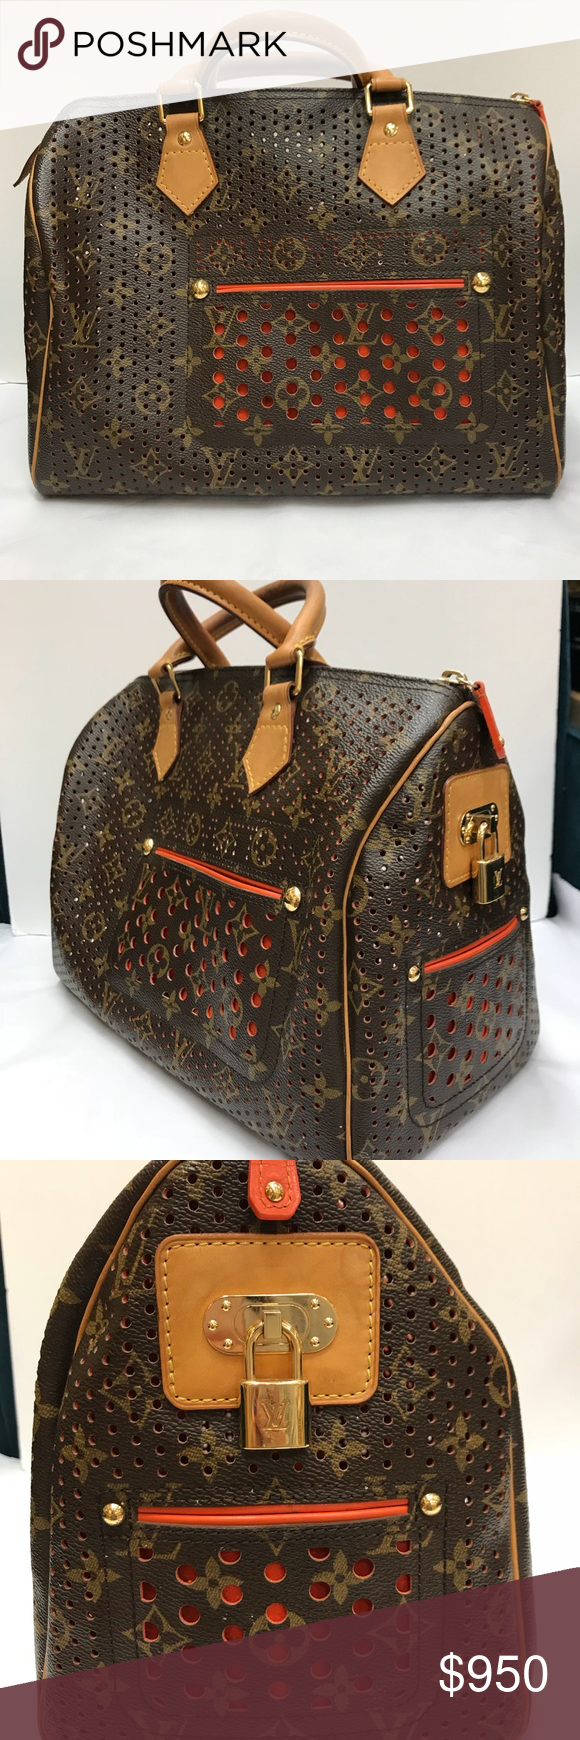 35818d217a05 Lv limited addition perforated speedy 30 Louis Vuitton Gorgeous orange  Limited addition collectors item monogrammed pattern